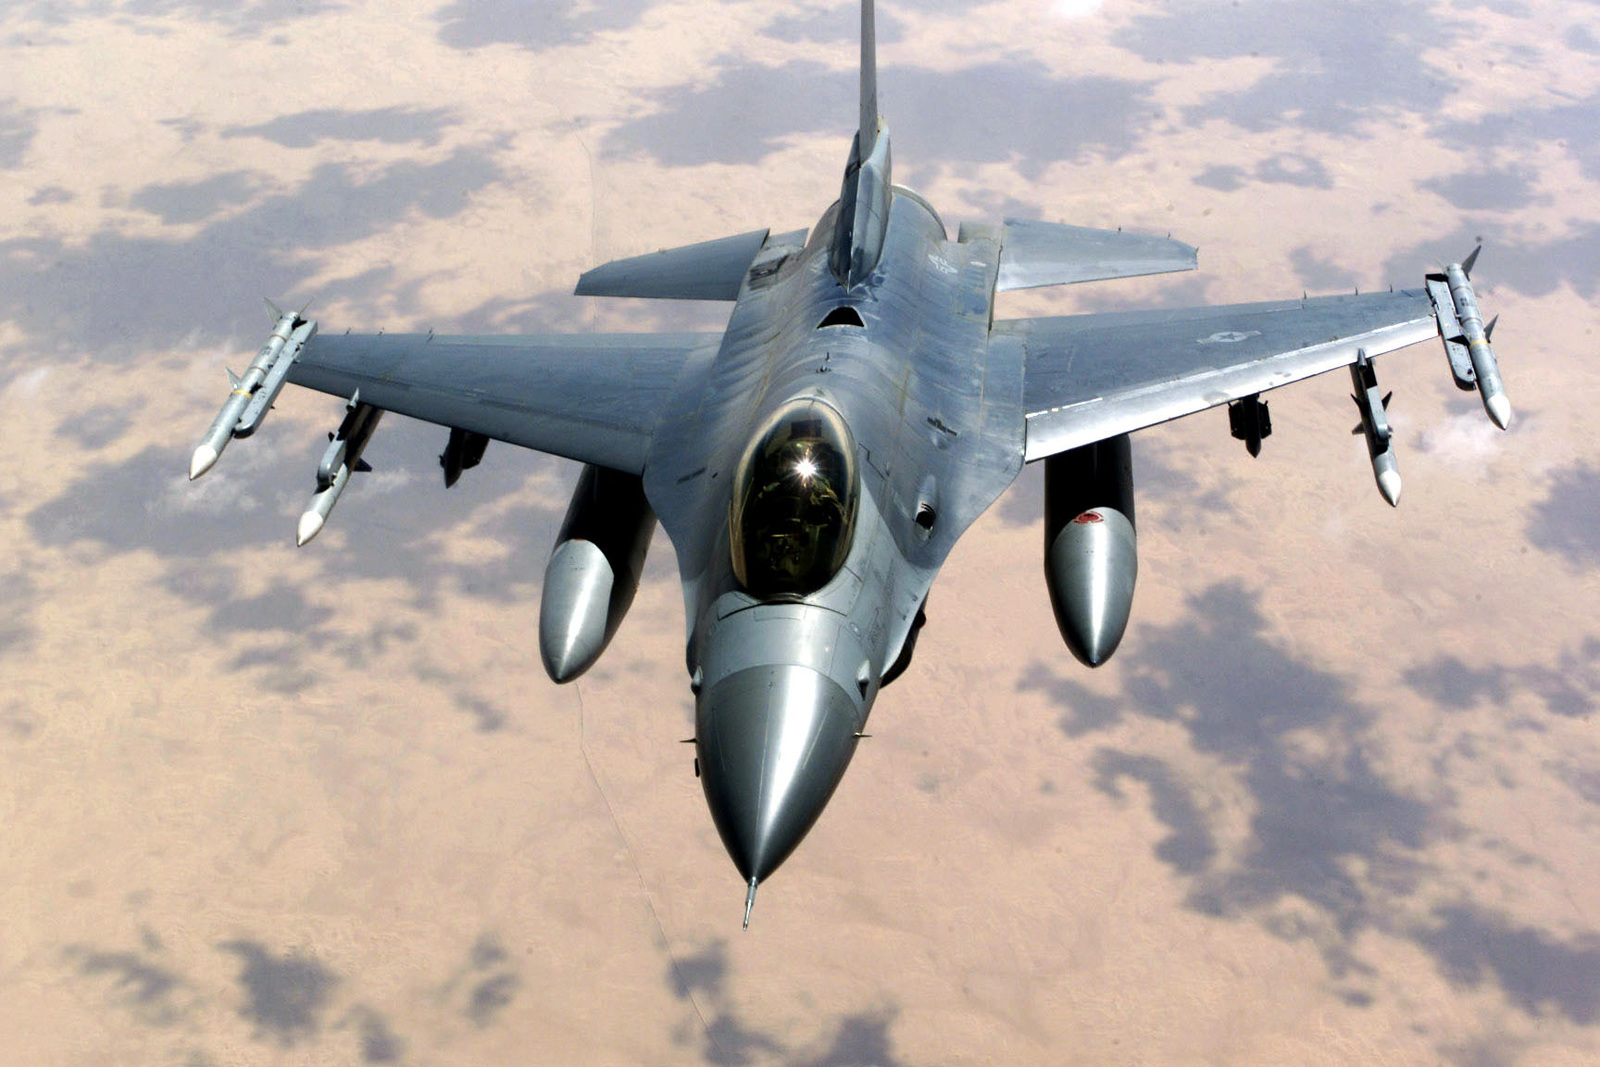 An F-15 Eagle aircraft over Saudi Arabia in support of Operation SOUTHERN WATCH. The F-15 is armed with AIM 7 Sparrow missiles and AIM 120 advanced medium-range air-to-air missiles (AMRAAM) and is part of the coalition forces of the 363rd Air Expeditionary Wing who enforce the no-fly and no-drive zone in Southern Iraq to protect and defend against Iraqi aggression